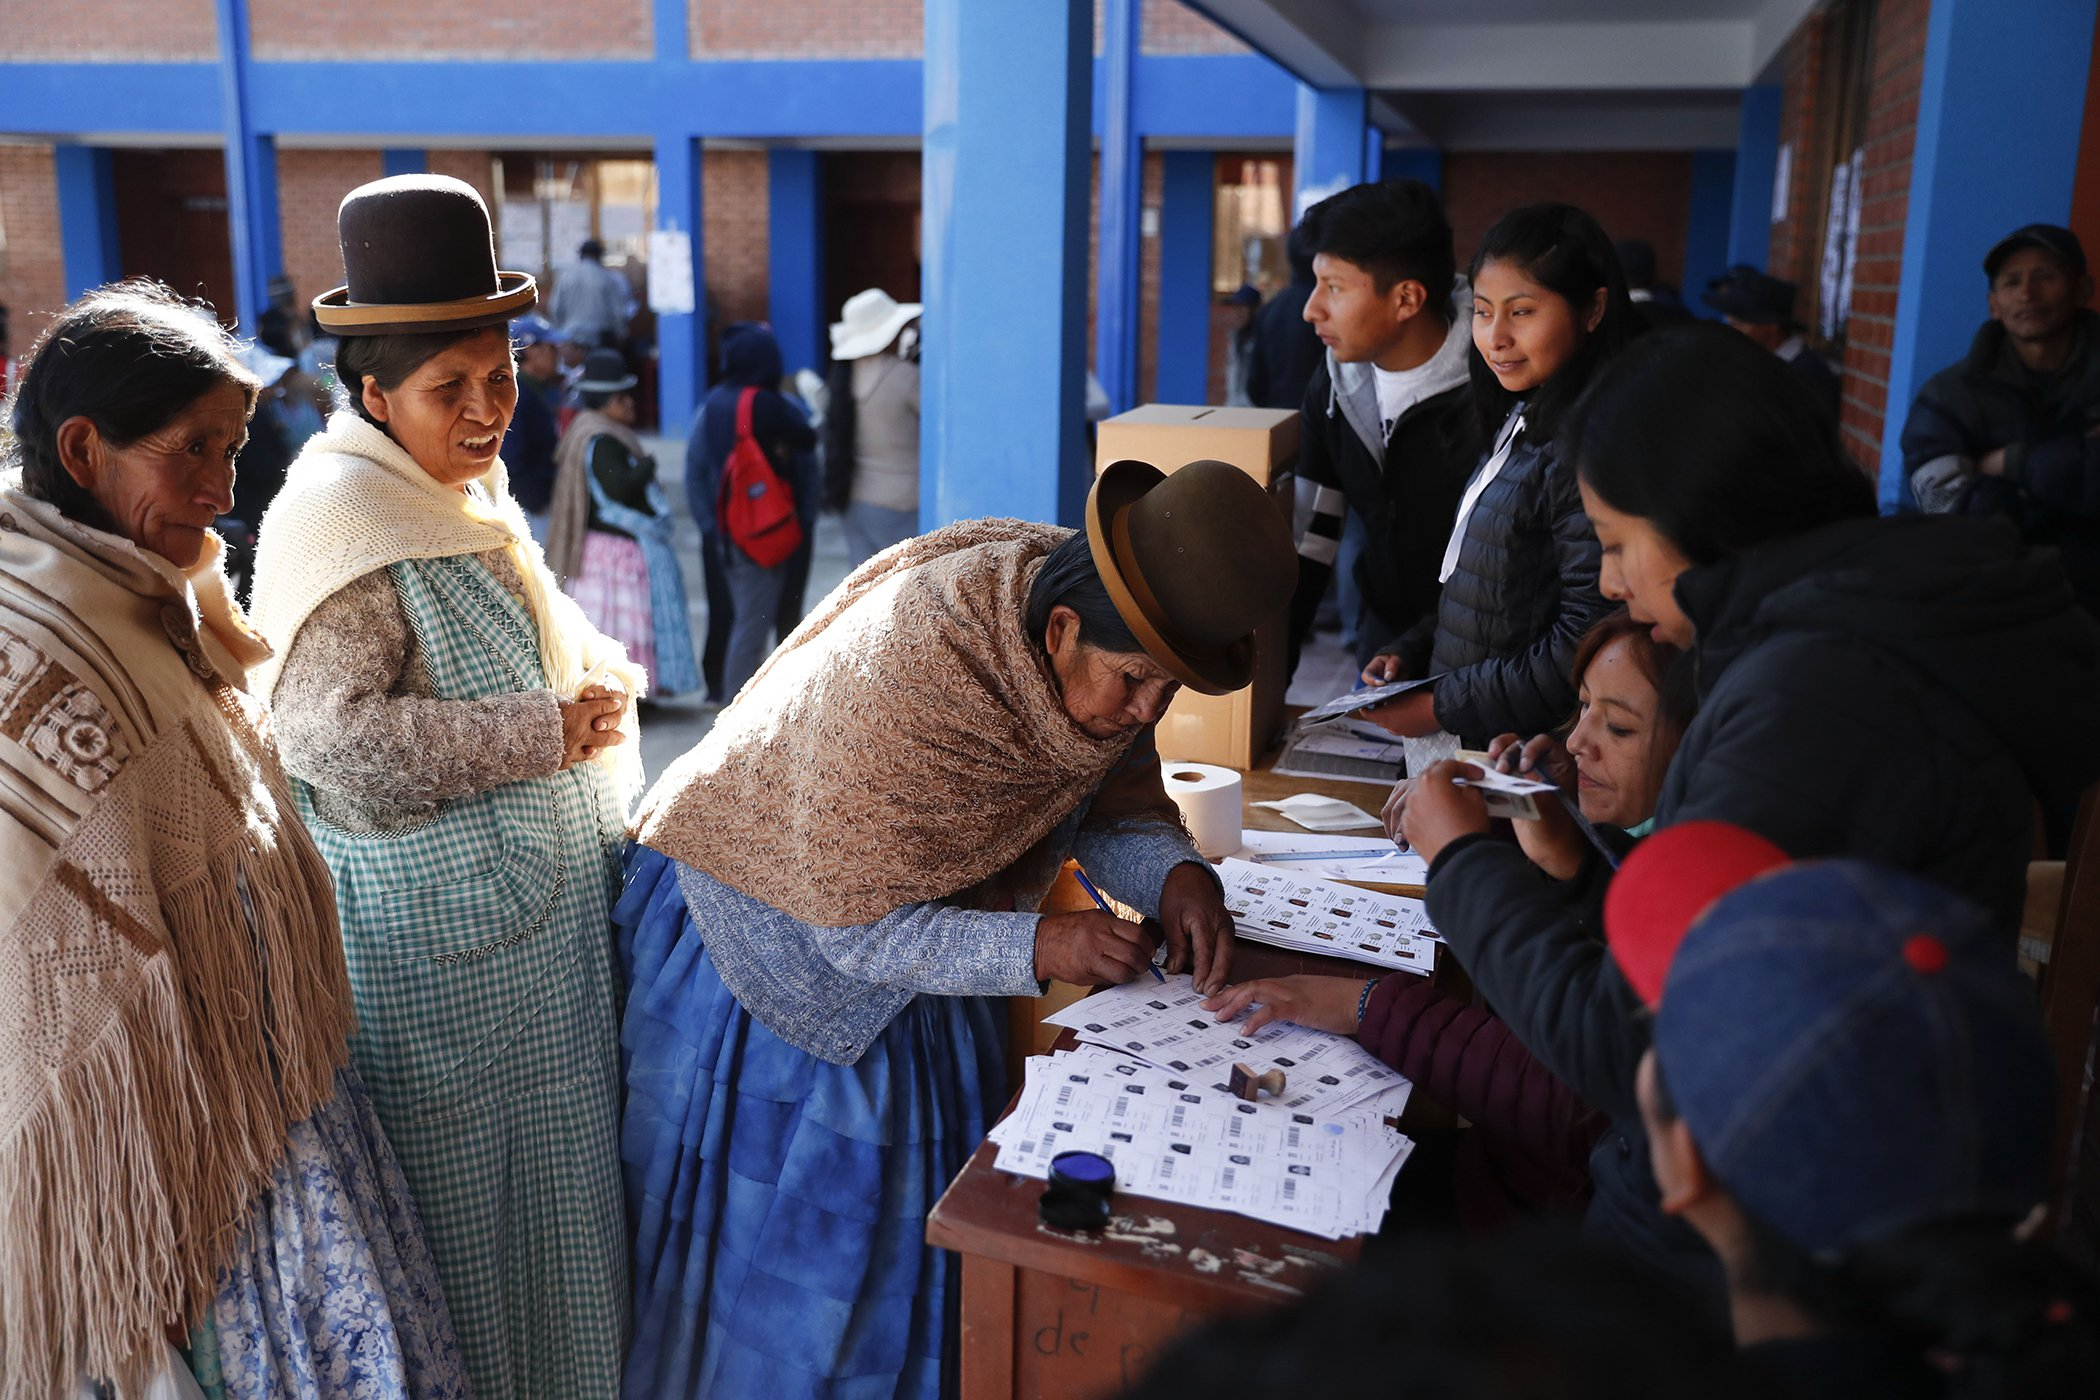 Voting-Around-The-World-Bolivia.jpg